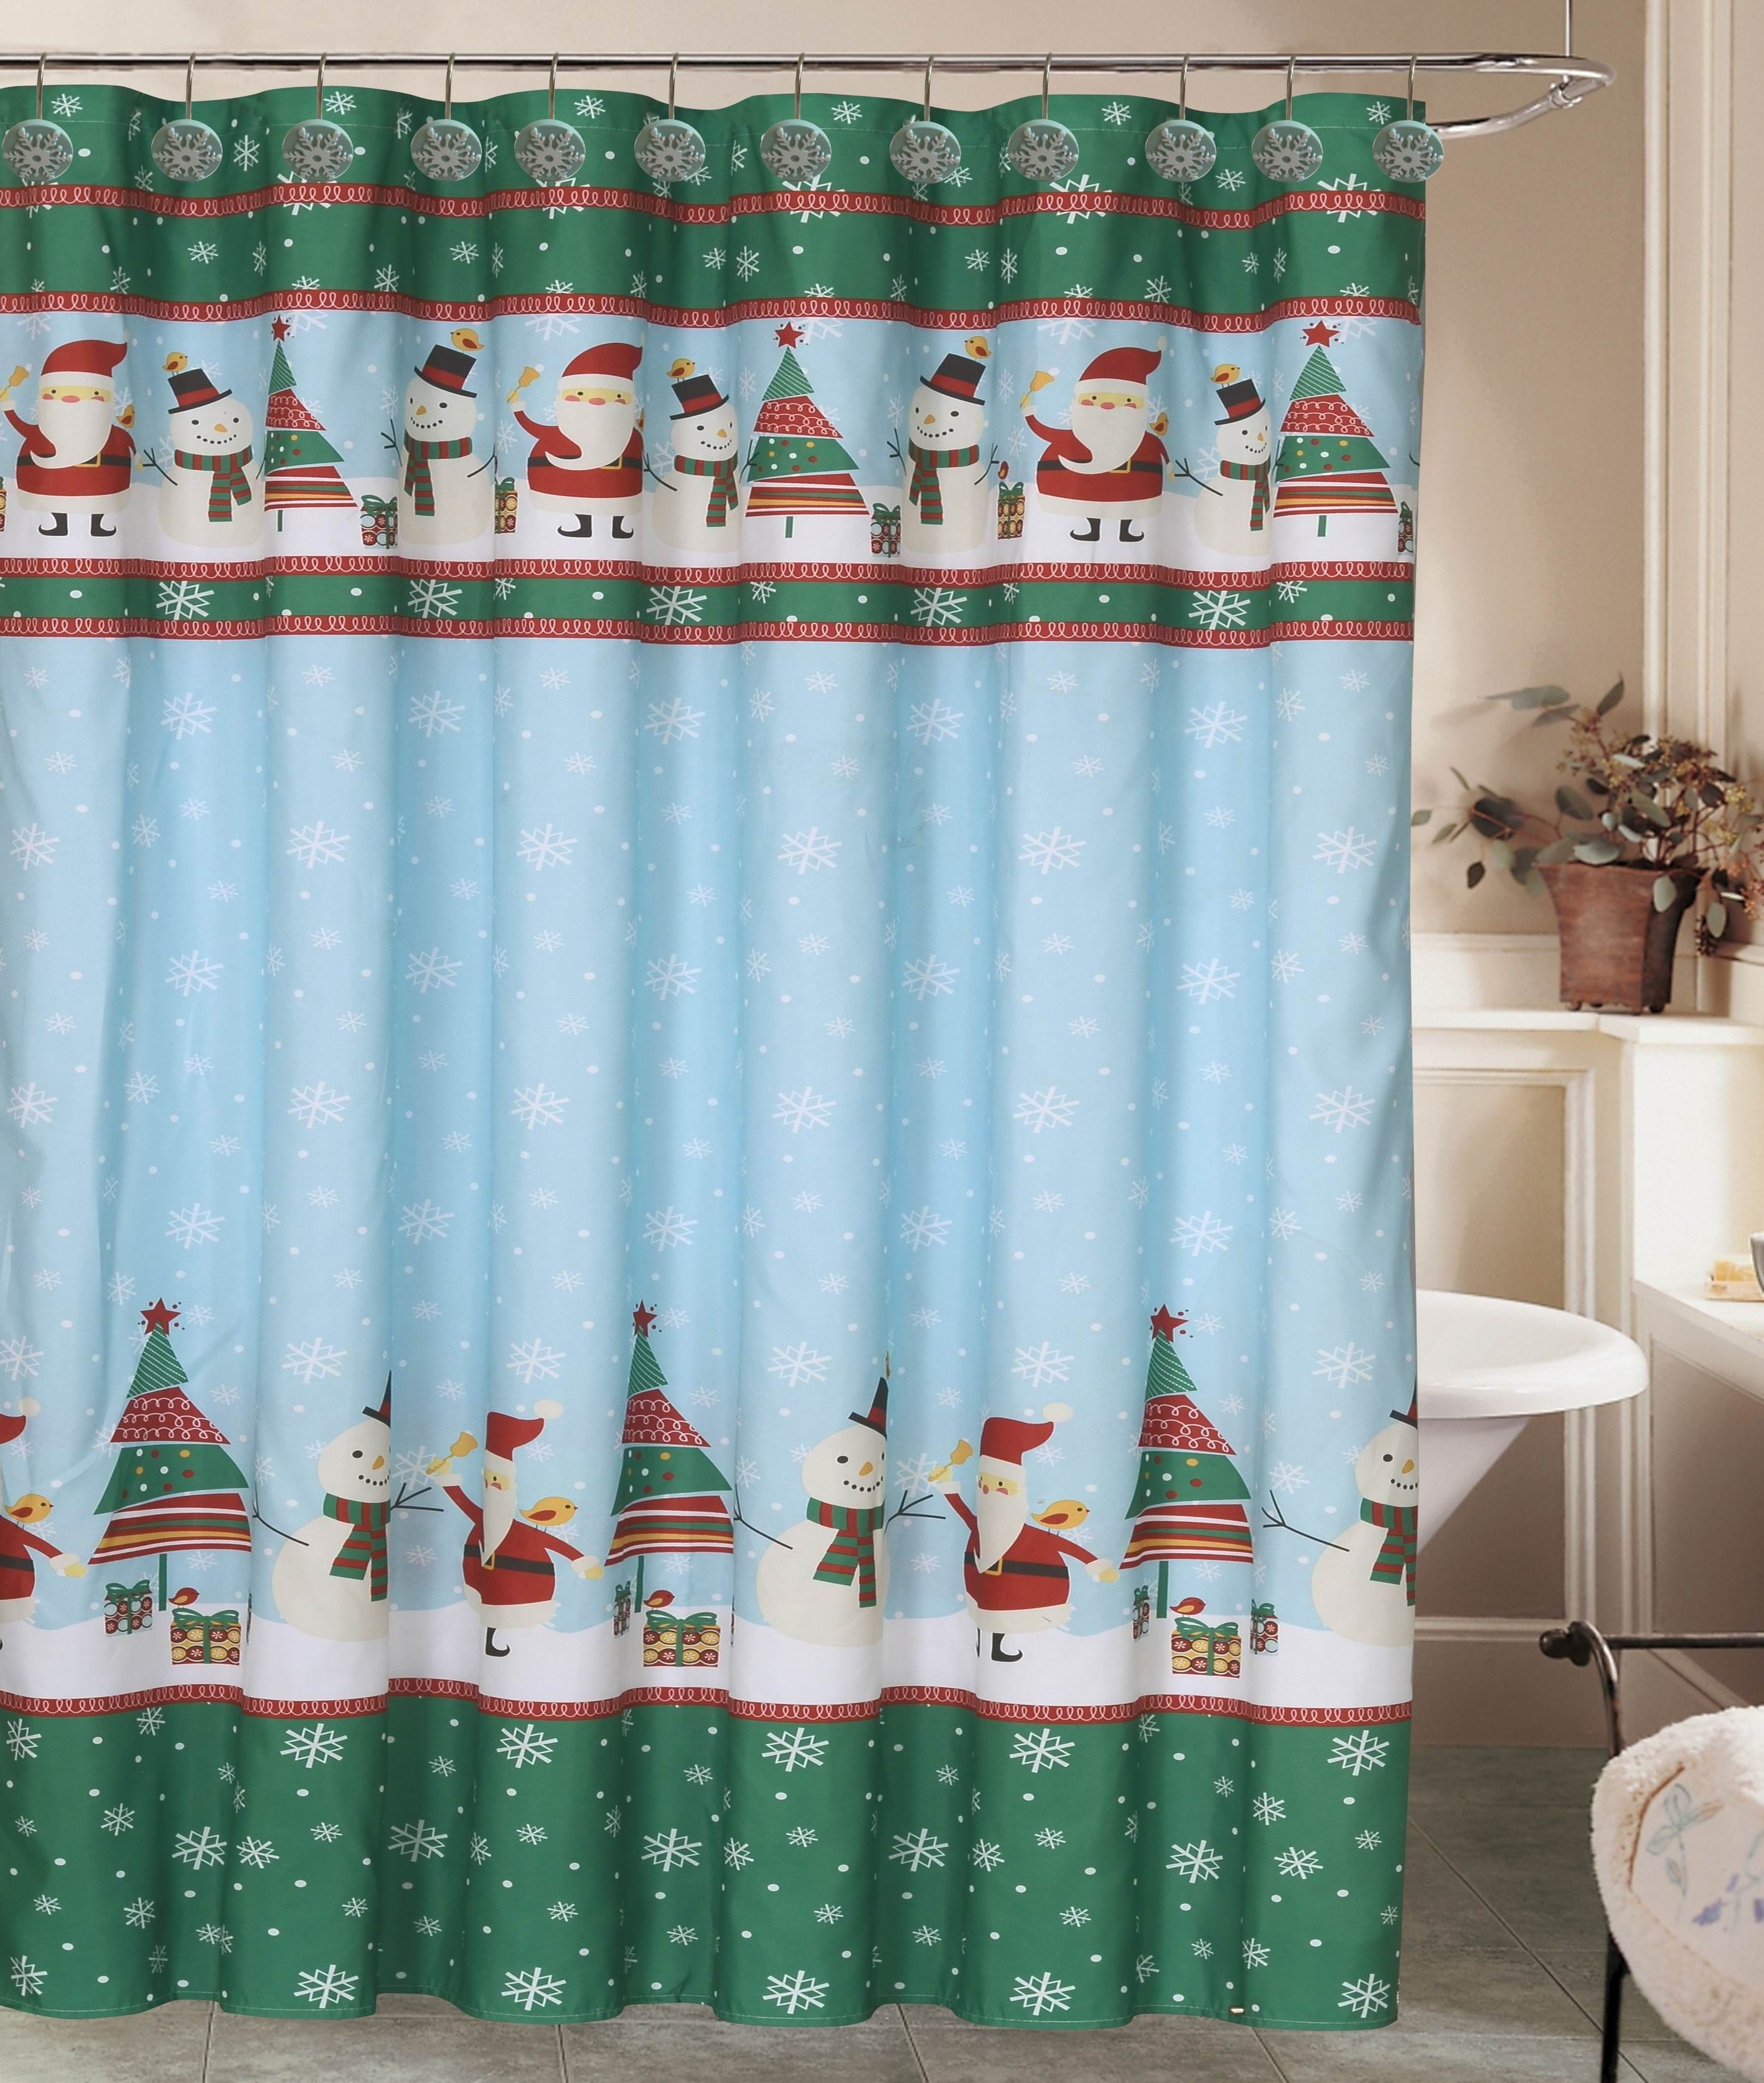 Snowman Bathroom Sets Beatrice Christmas Holiday Santa Shower Curtain With 12 Resin